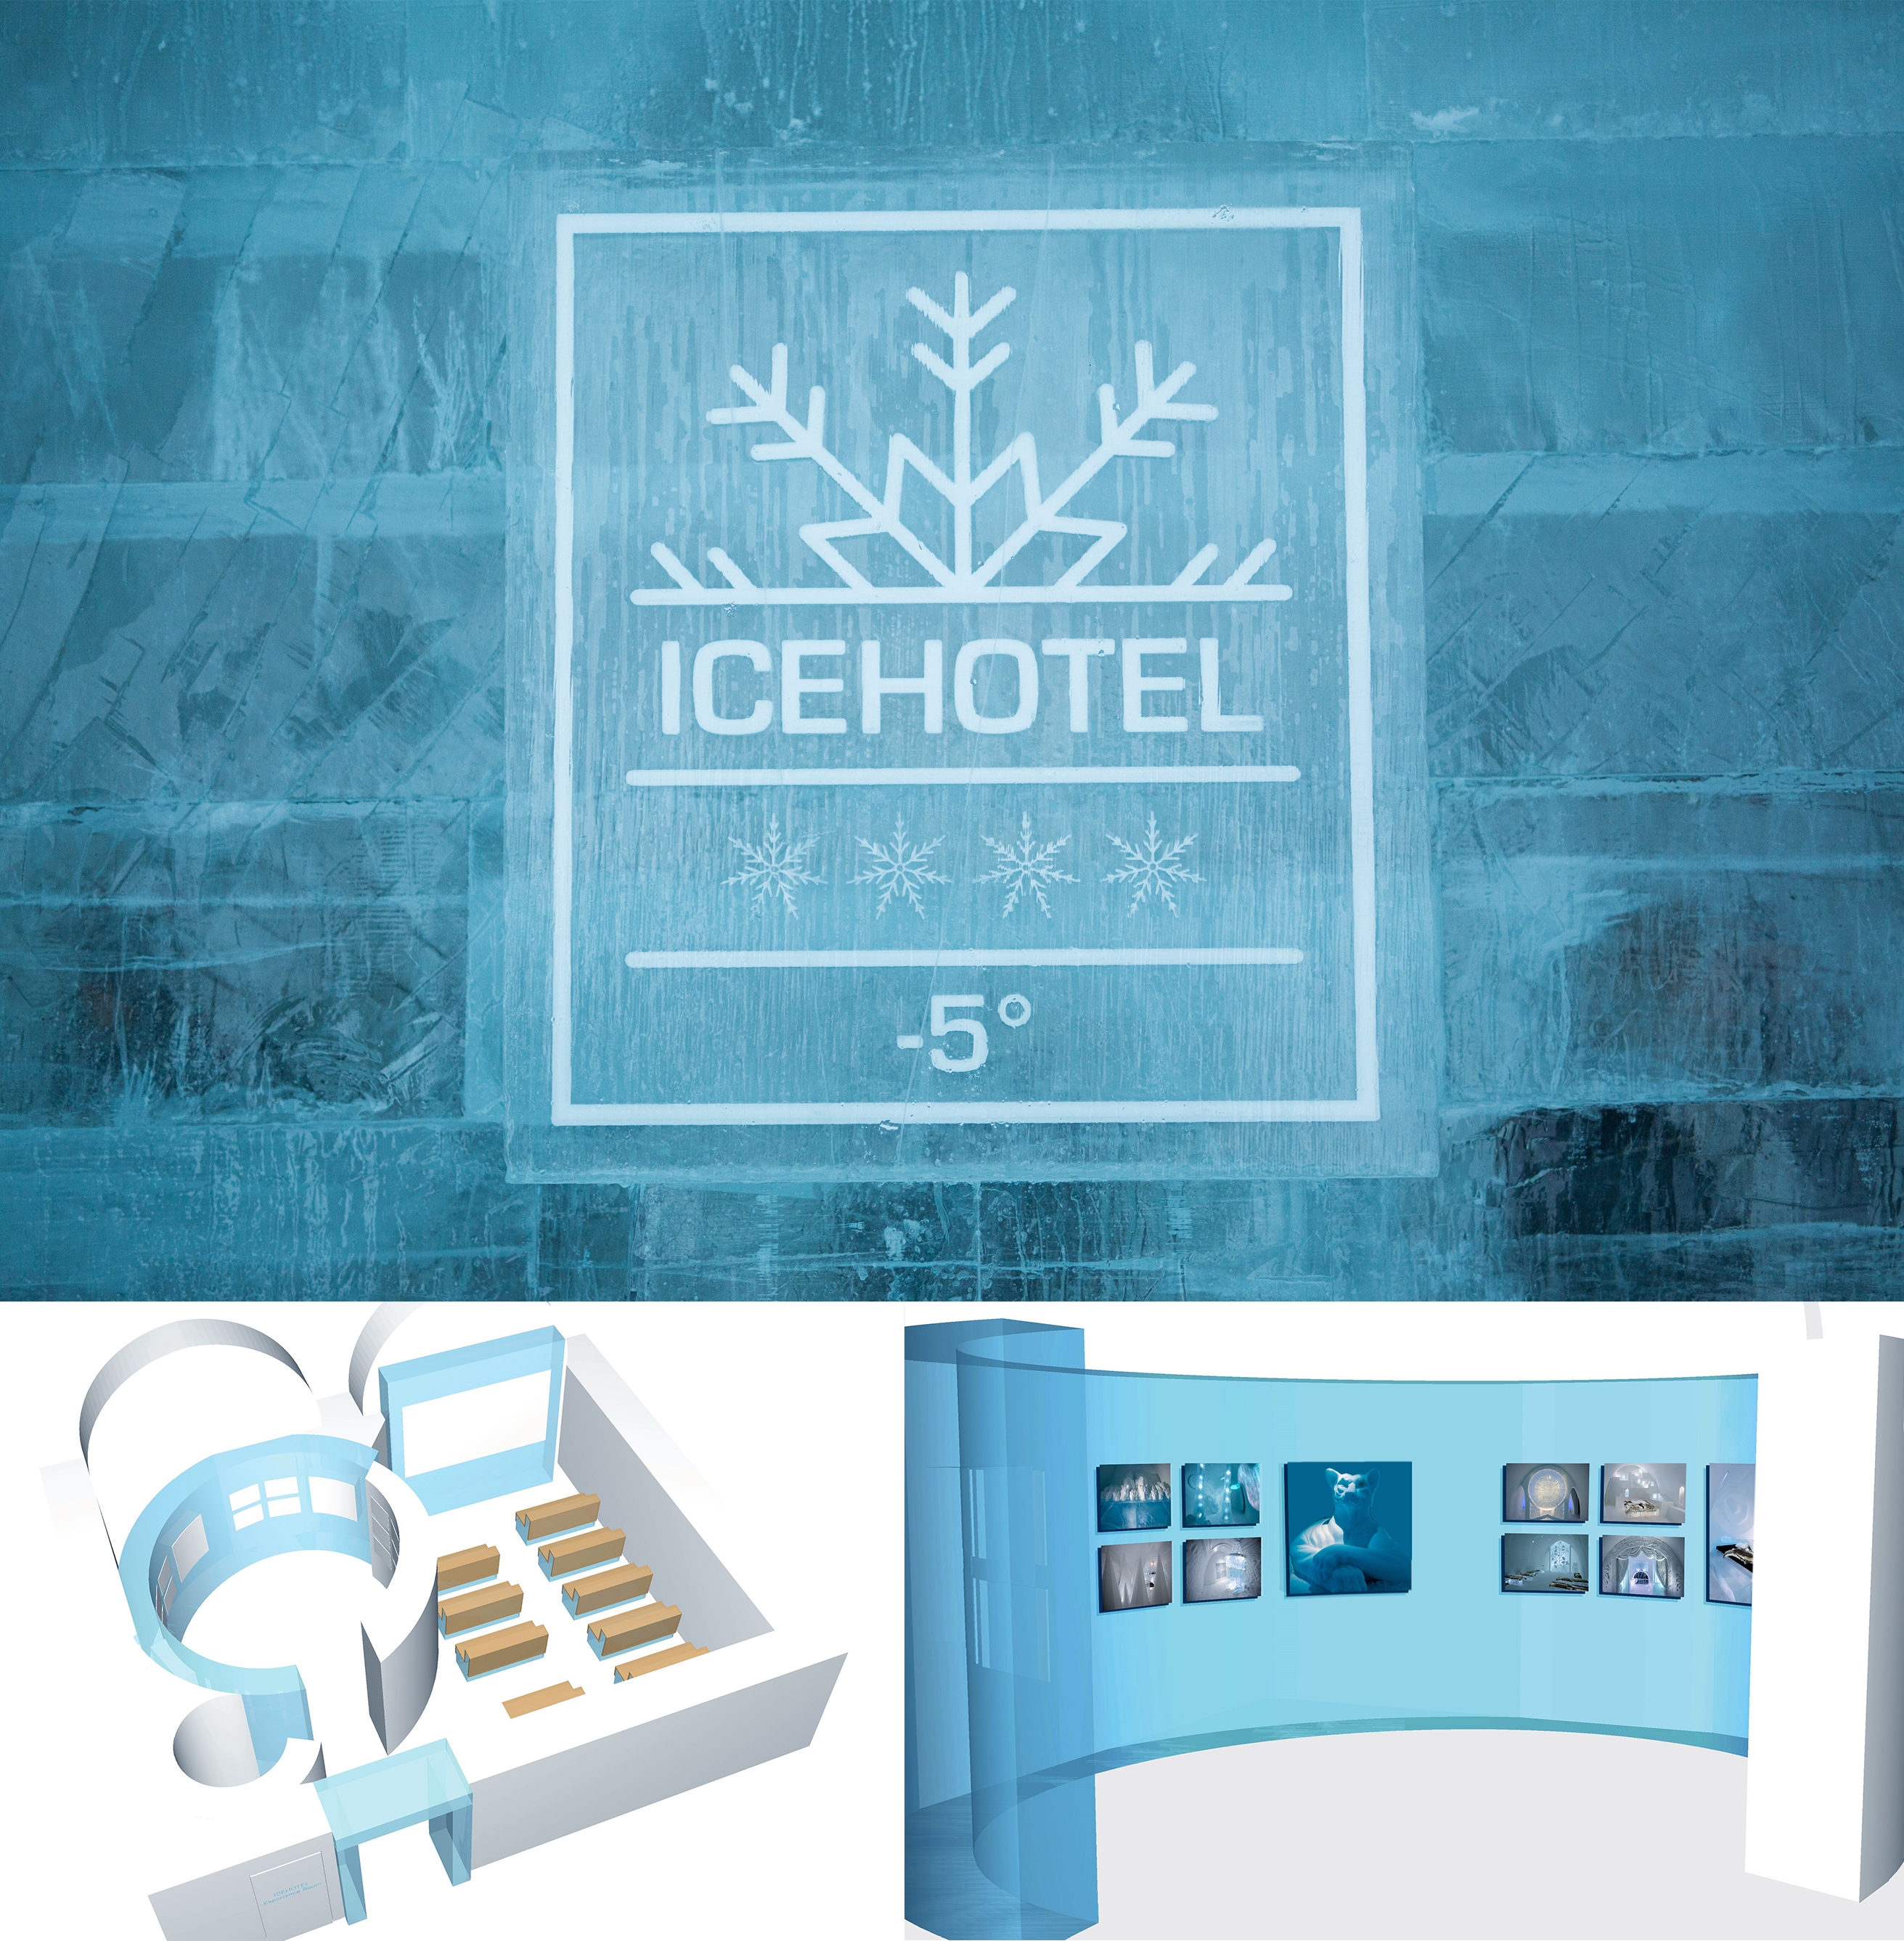 Illustrations of new experience room at Icehotel